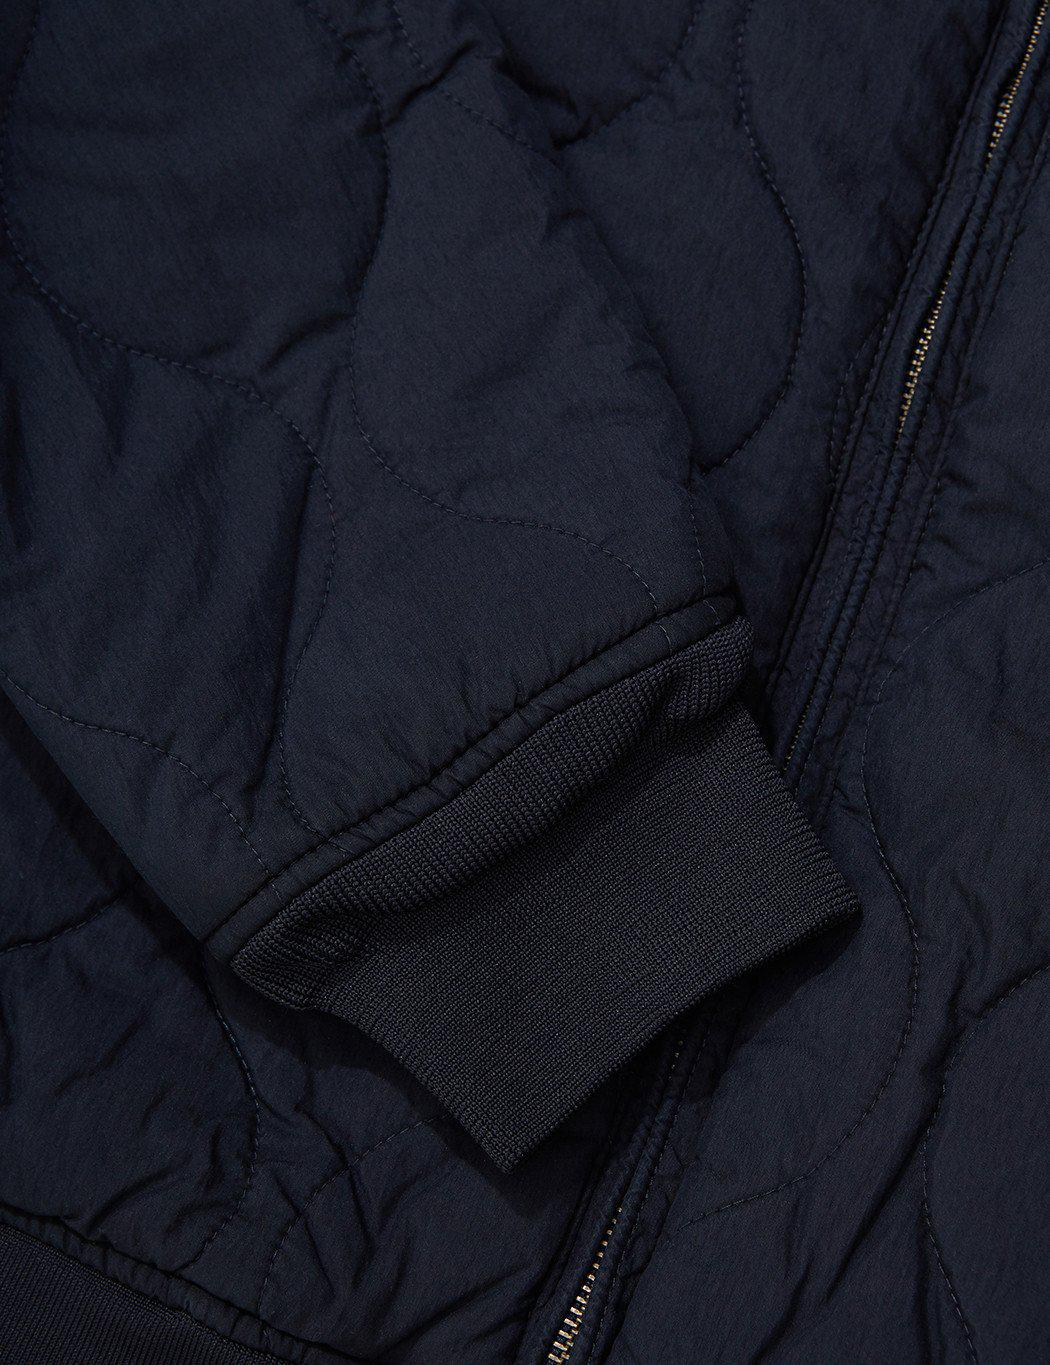 Levi's Cotton Thermore Quilted Bomber Jacket in Navy Blue (Blue) for Men